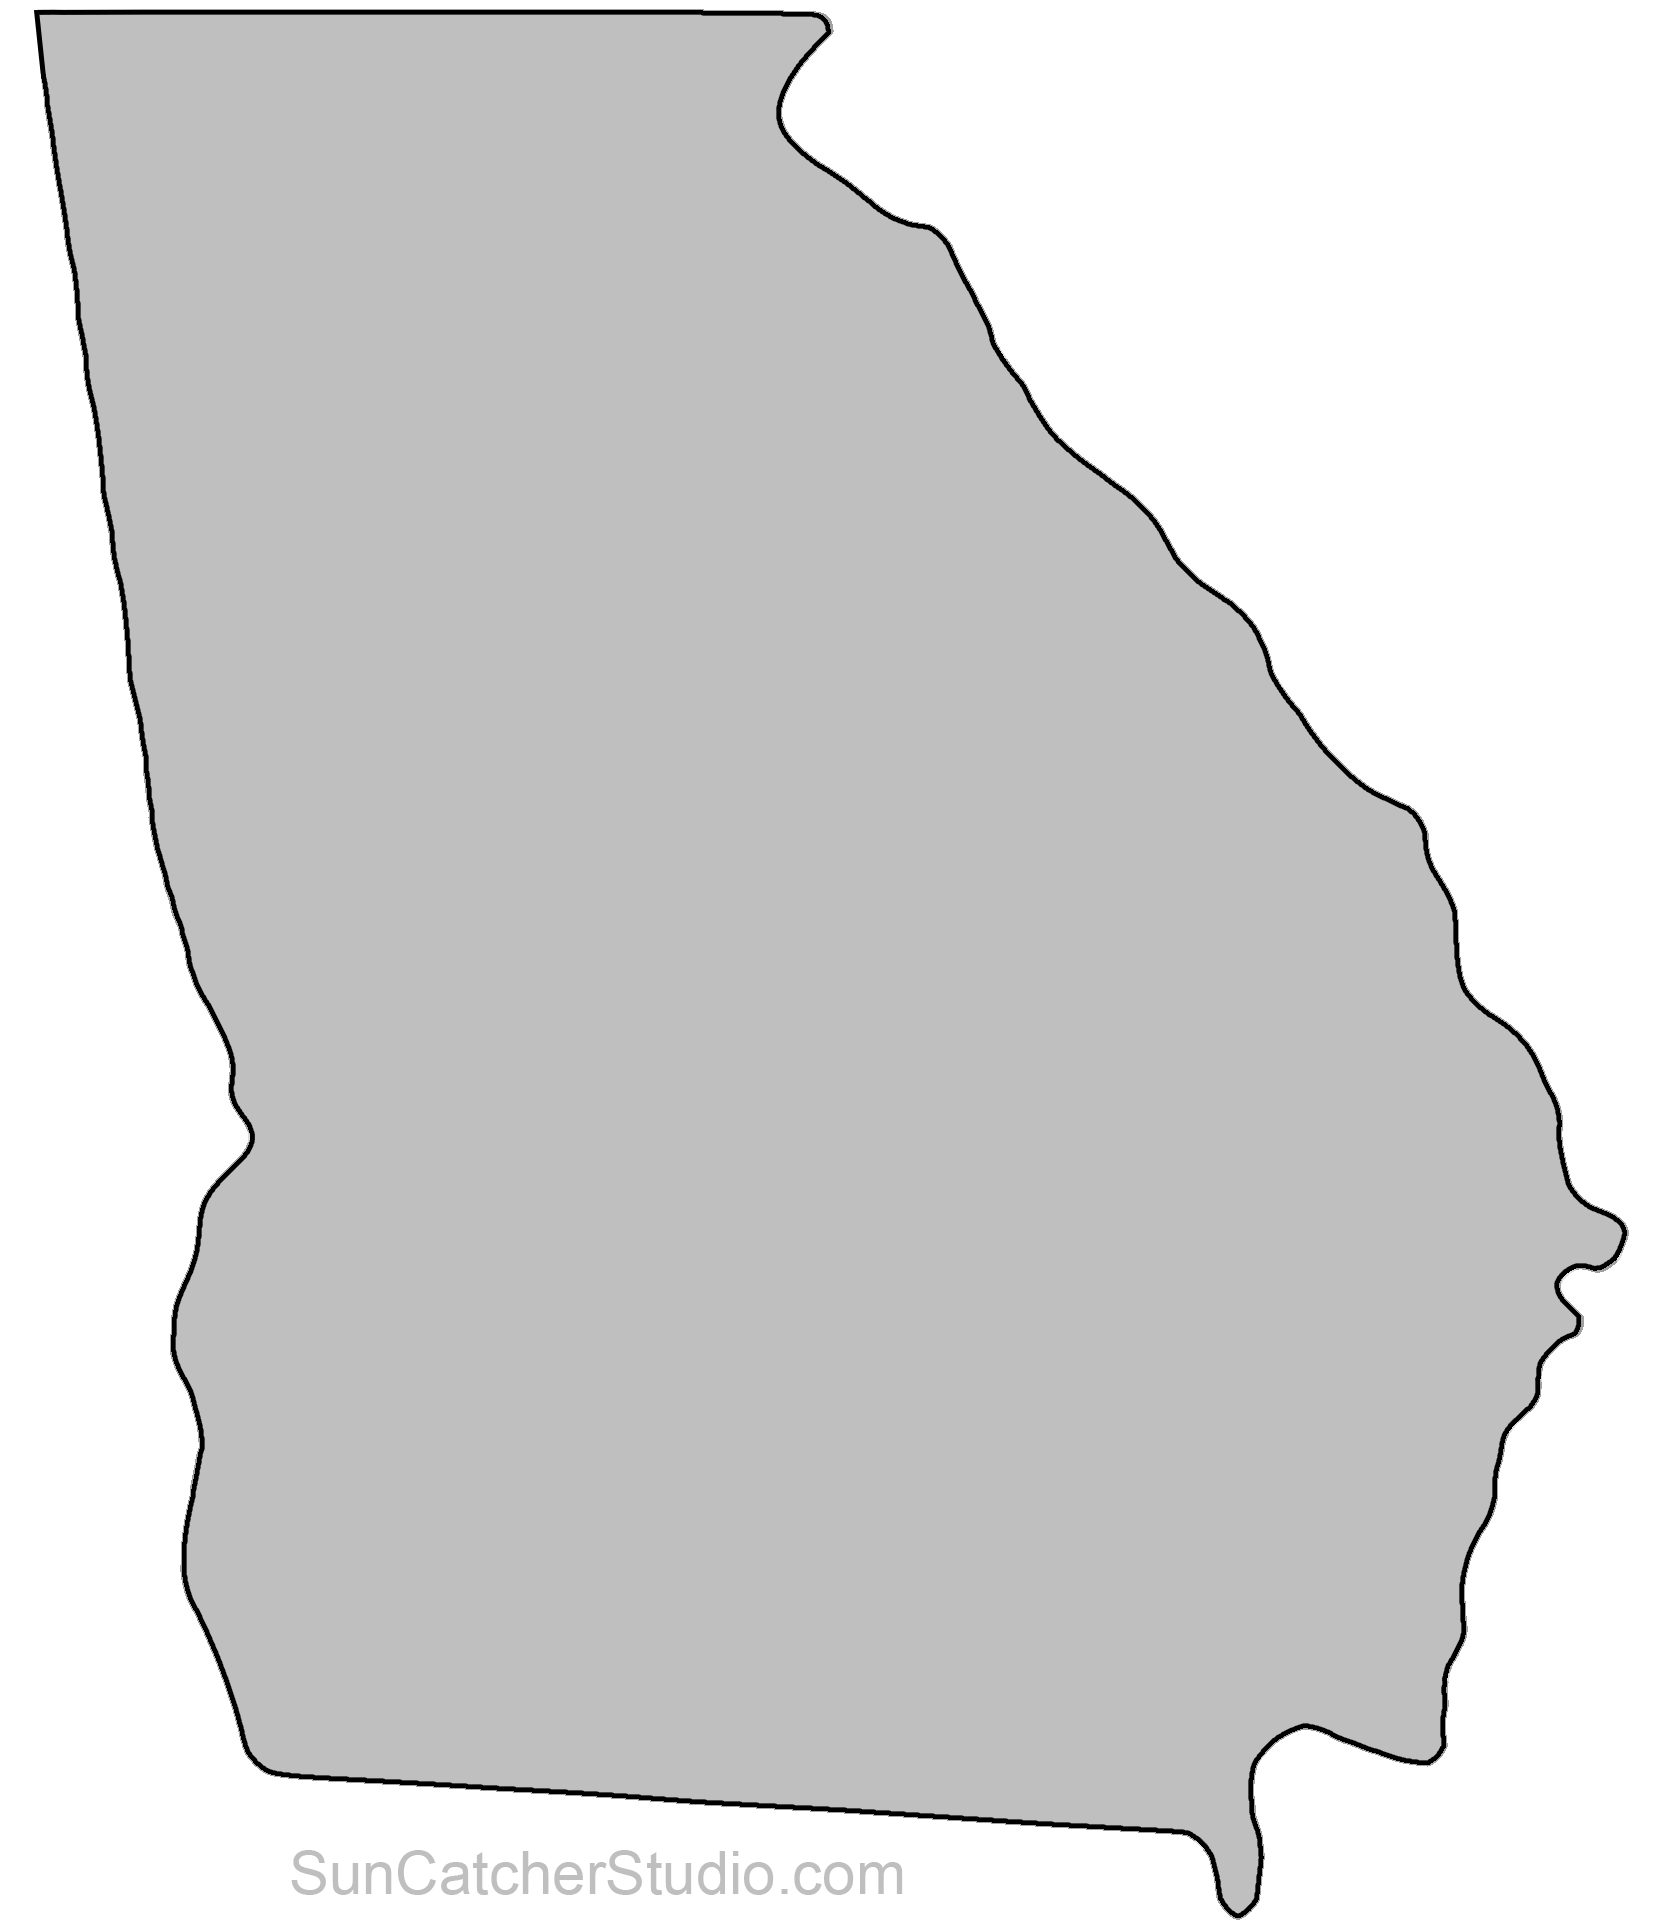 State Outlines Maps Stencils Patterns Clip Art All 50 States Georgia Map Georgia Outline Door Hanger Template